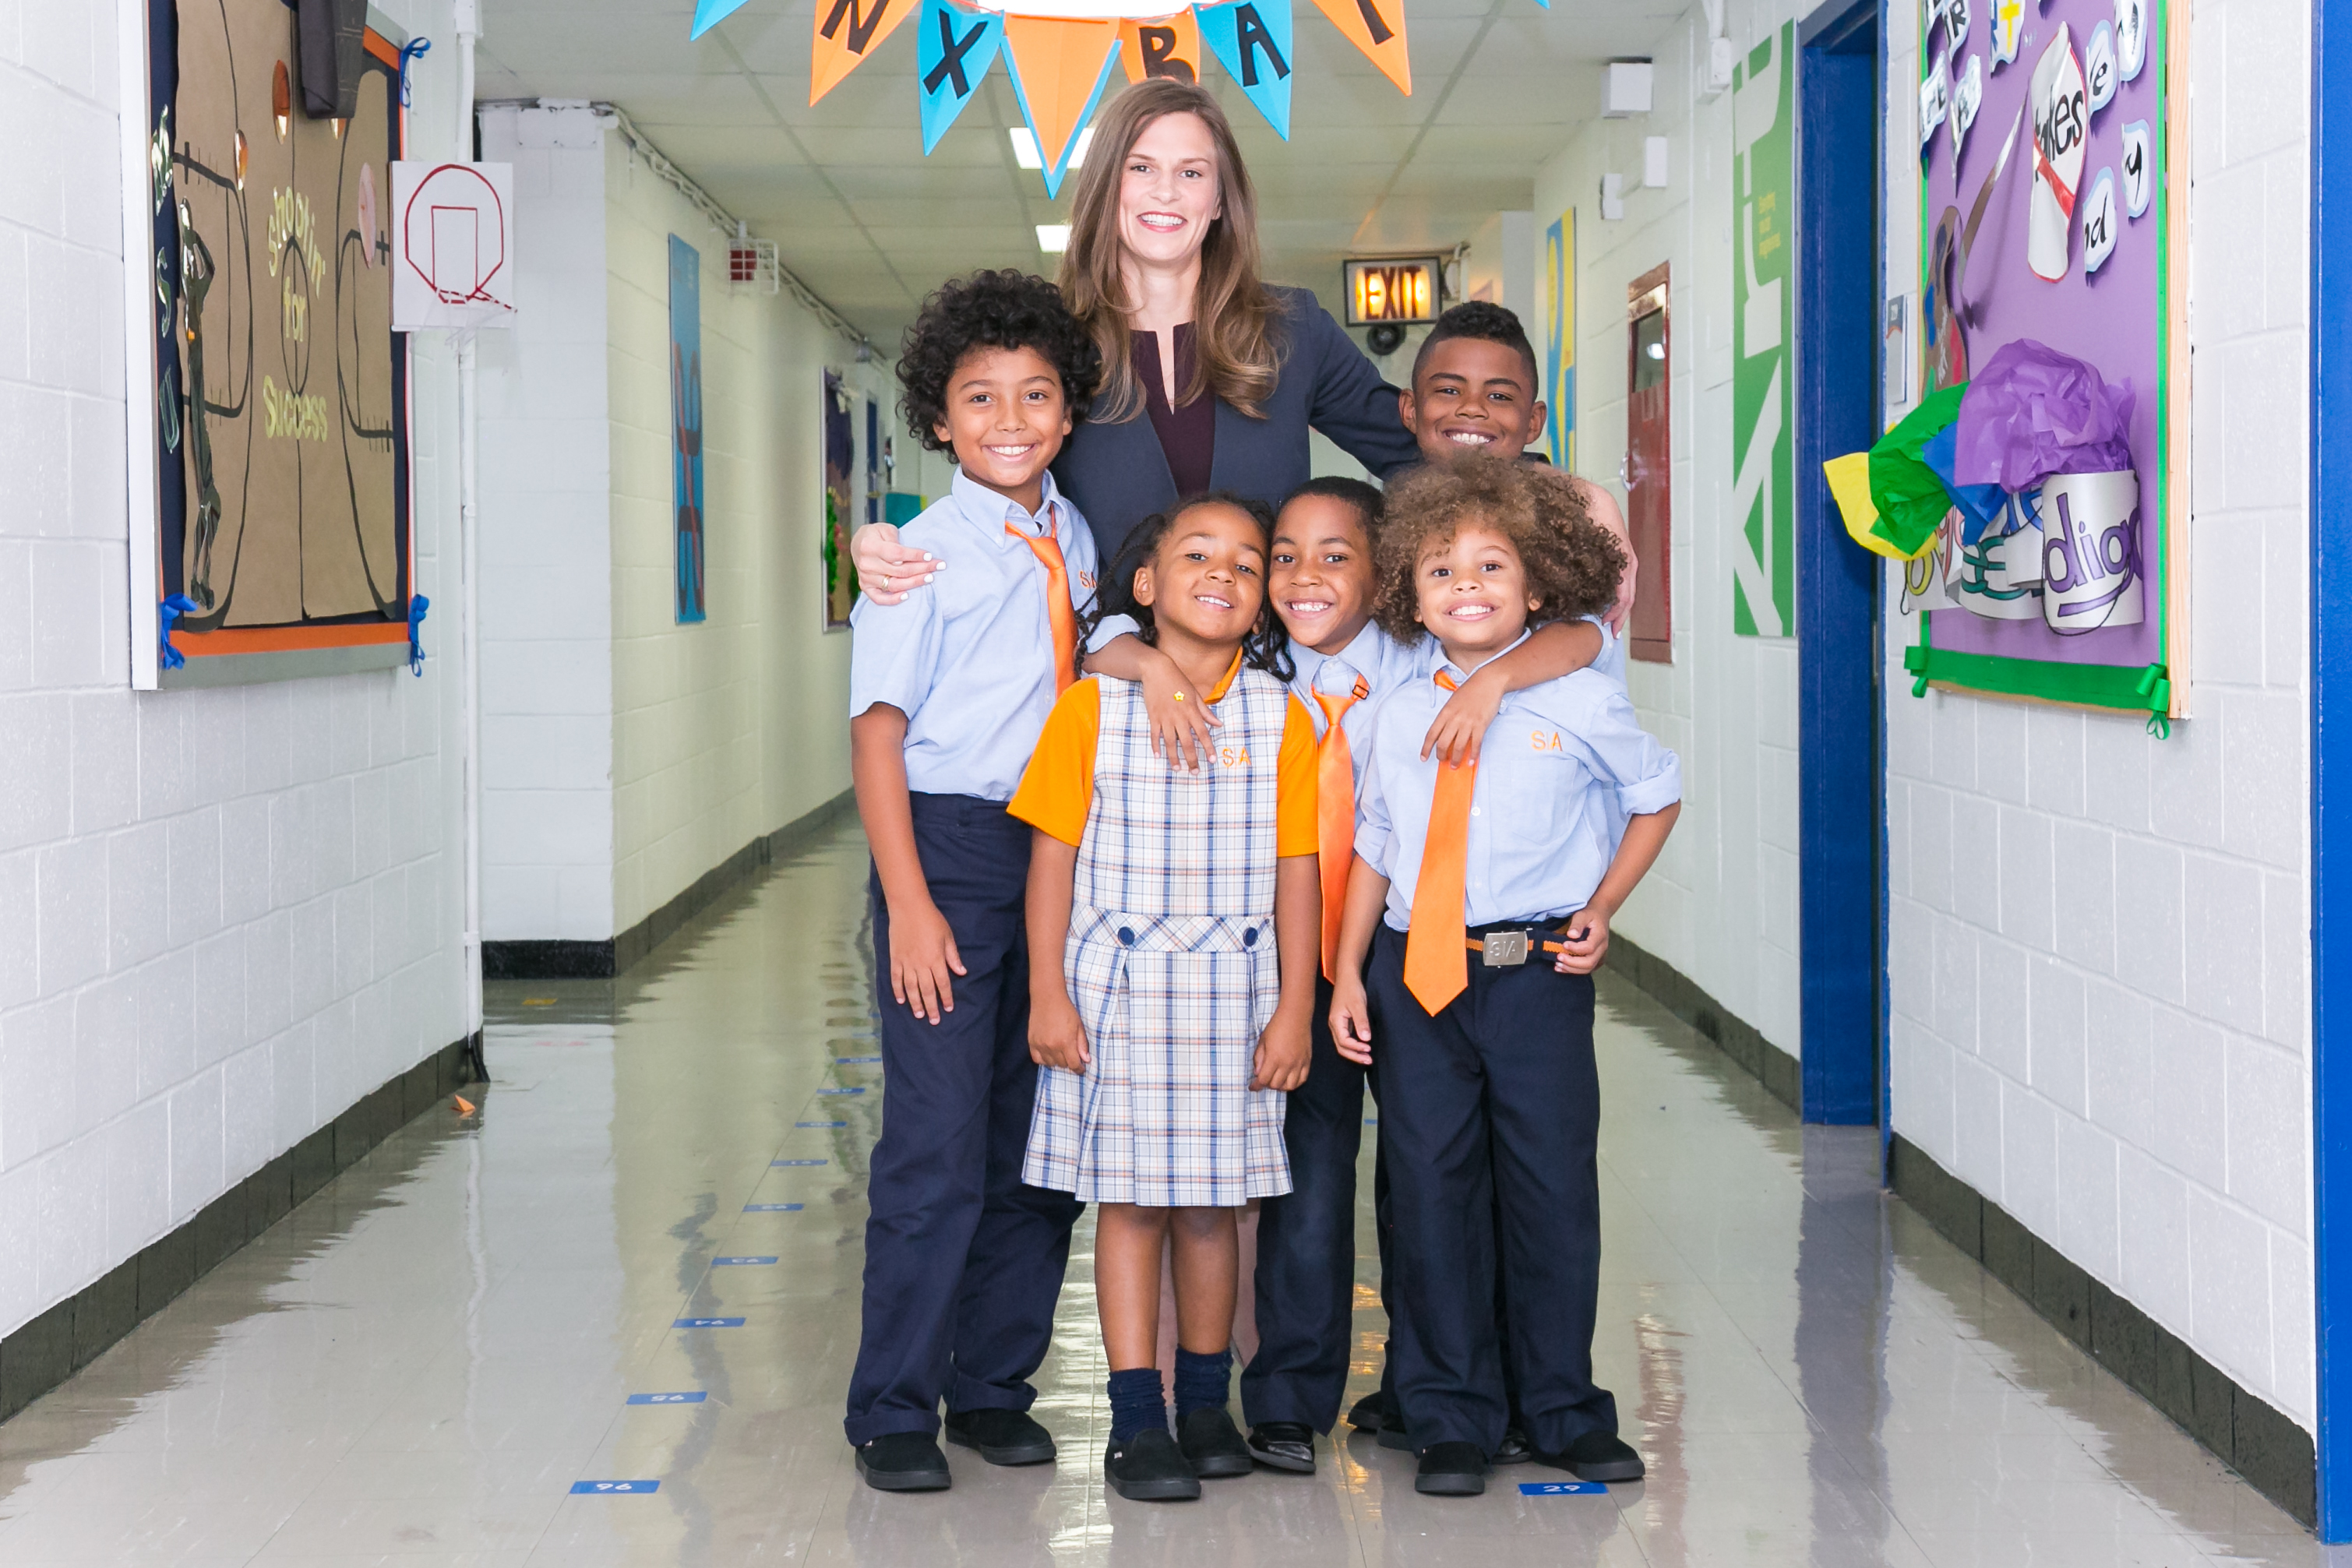 Success Academy Bronx 1 principal Elizabeth Vandlik today was named a recipient of the 2017 Ryan Award from the Accelerate Institute for closing the achievement gap in urban education. (Photo: Business Wire)